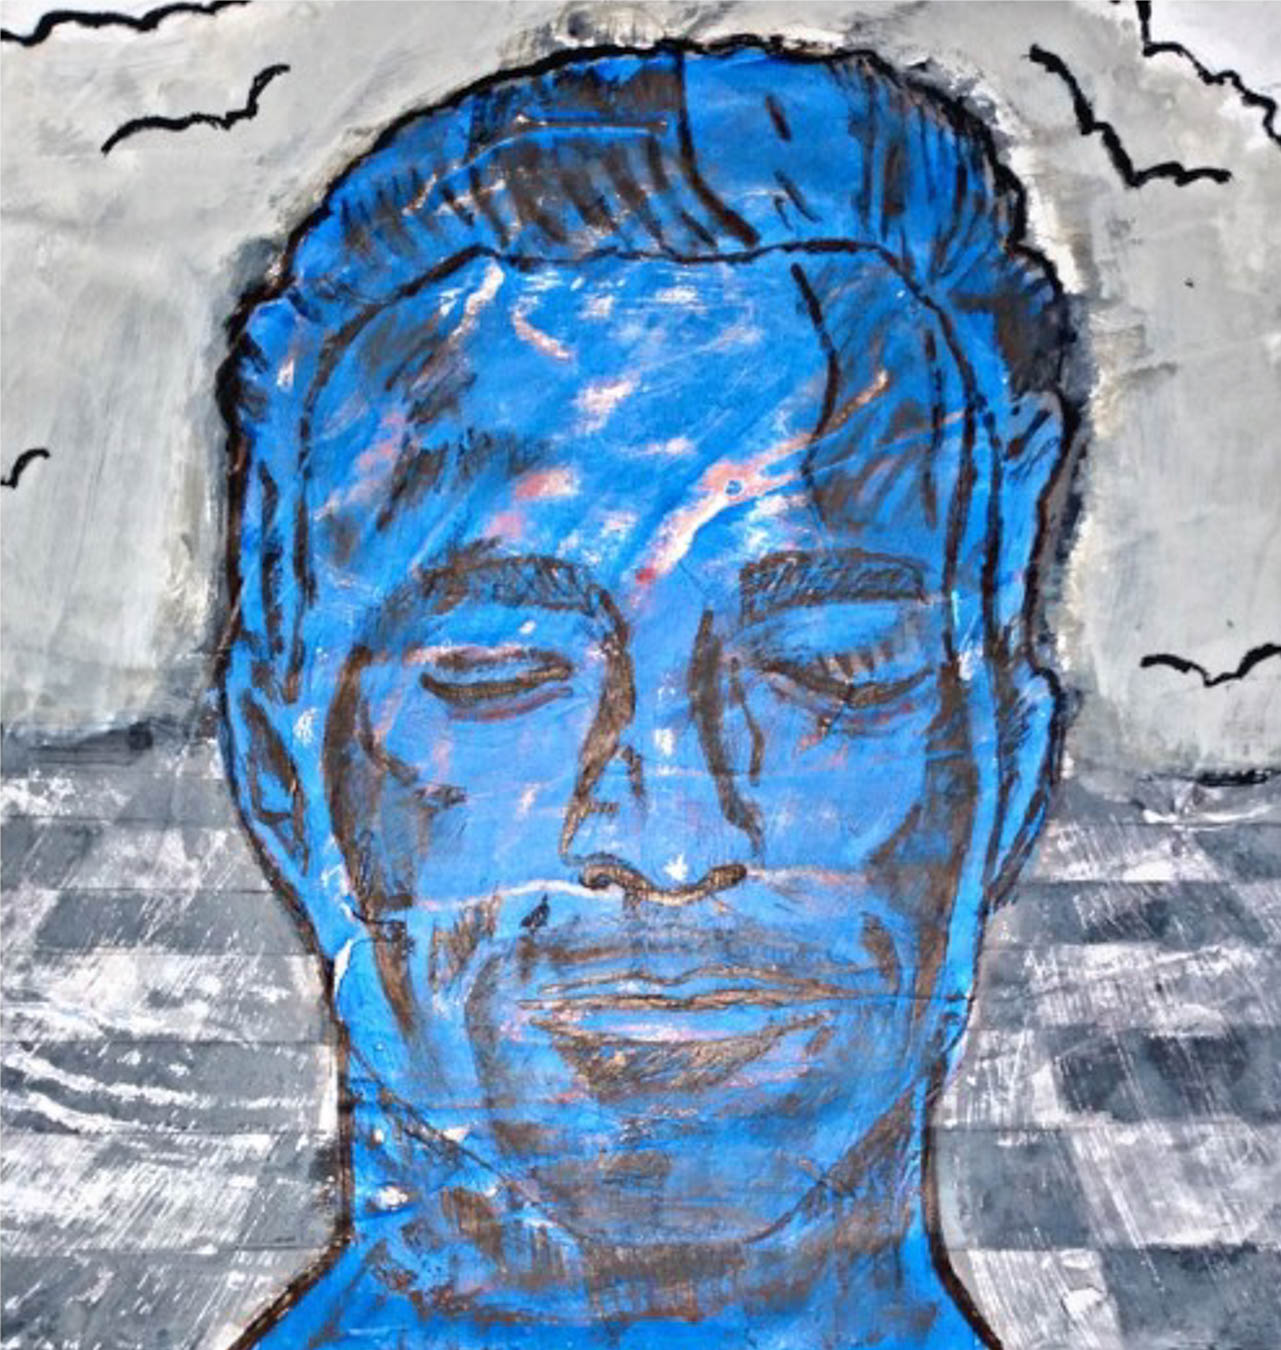 Close-up illustration of a man's face in blue.